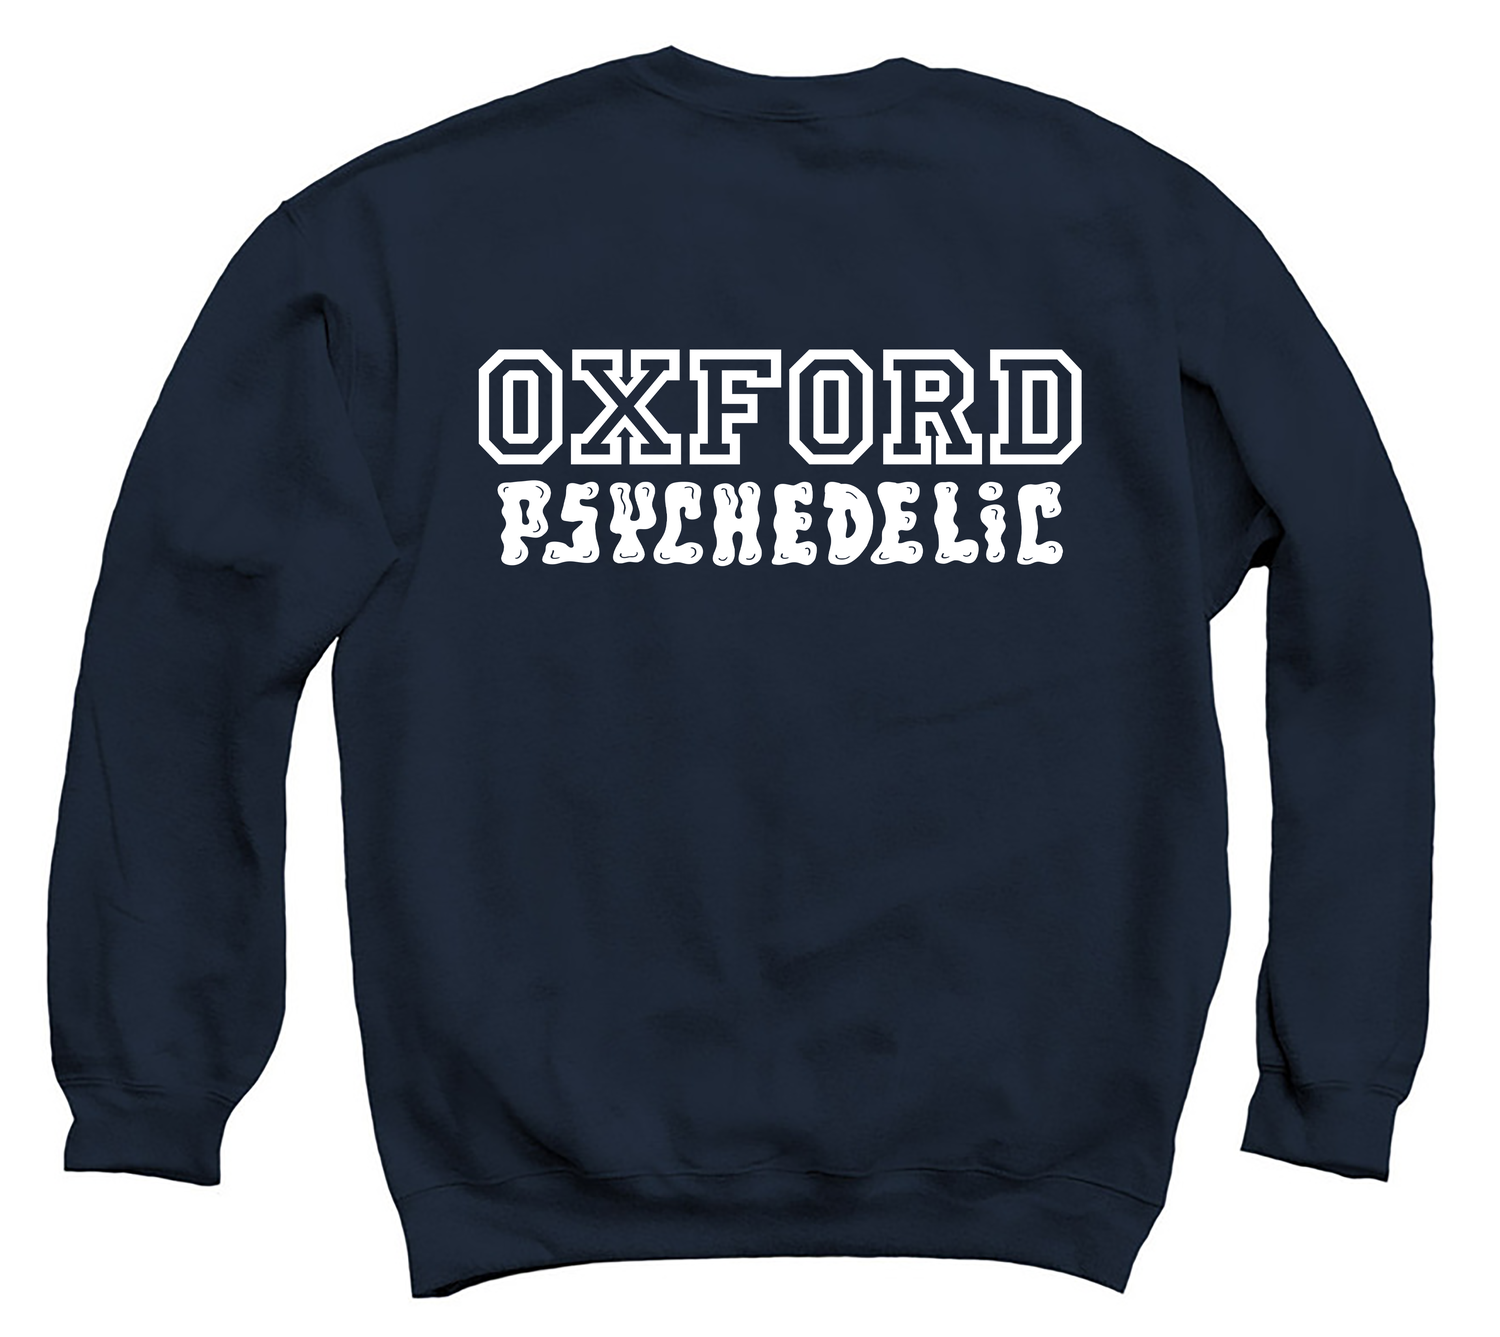 Image of Pre-order varsity unisex classic sweatshirt navy (certified organic cotton by Earth Positive)